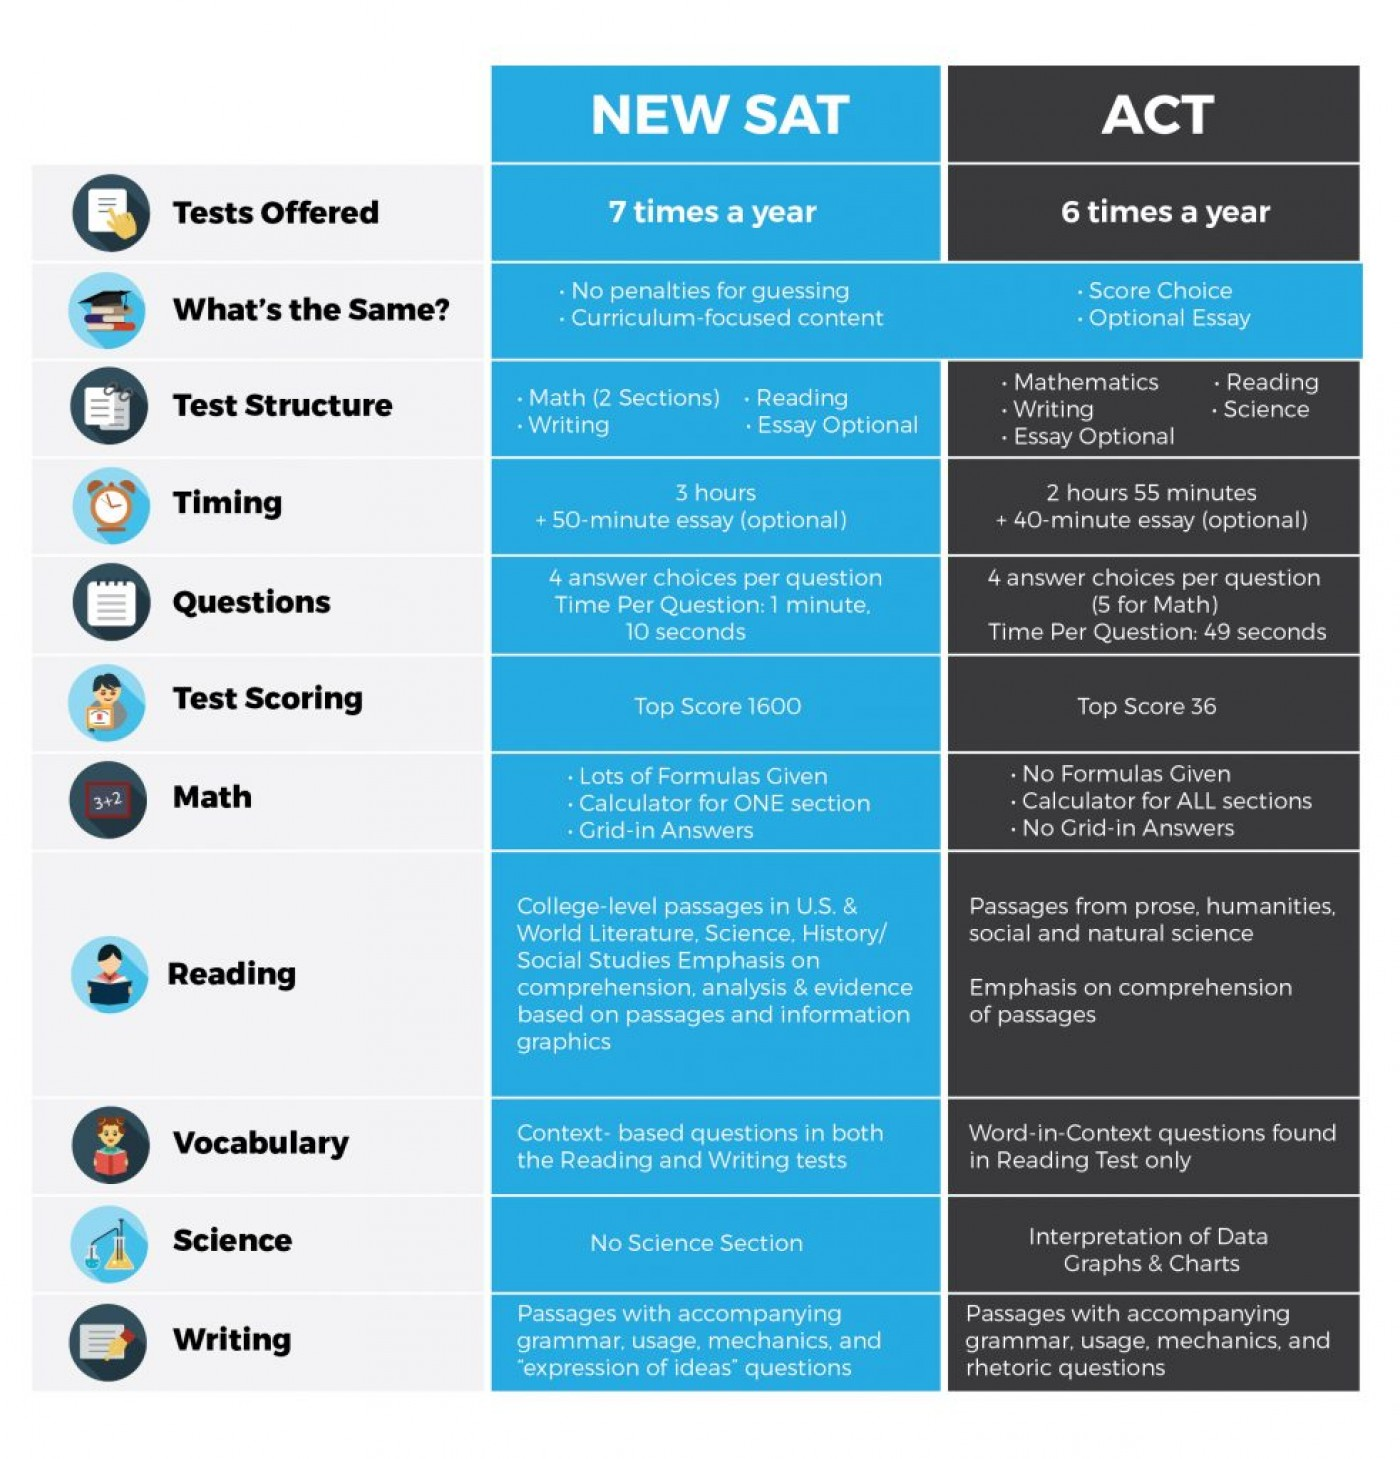 004 New Sat Vs Act 982x1024 Essay Example Colleges That Fascinating Require Schools 2019 College Board Don't Essays For Admission 1400